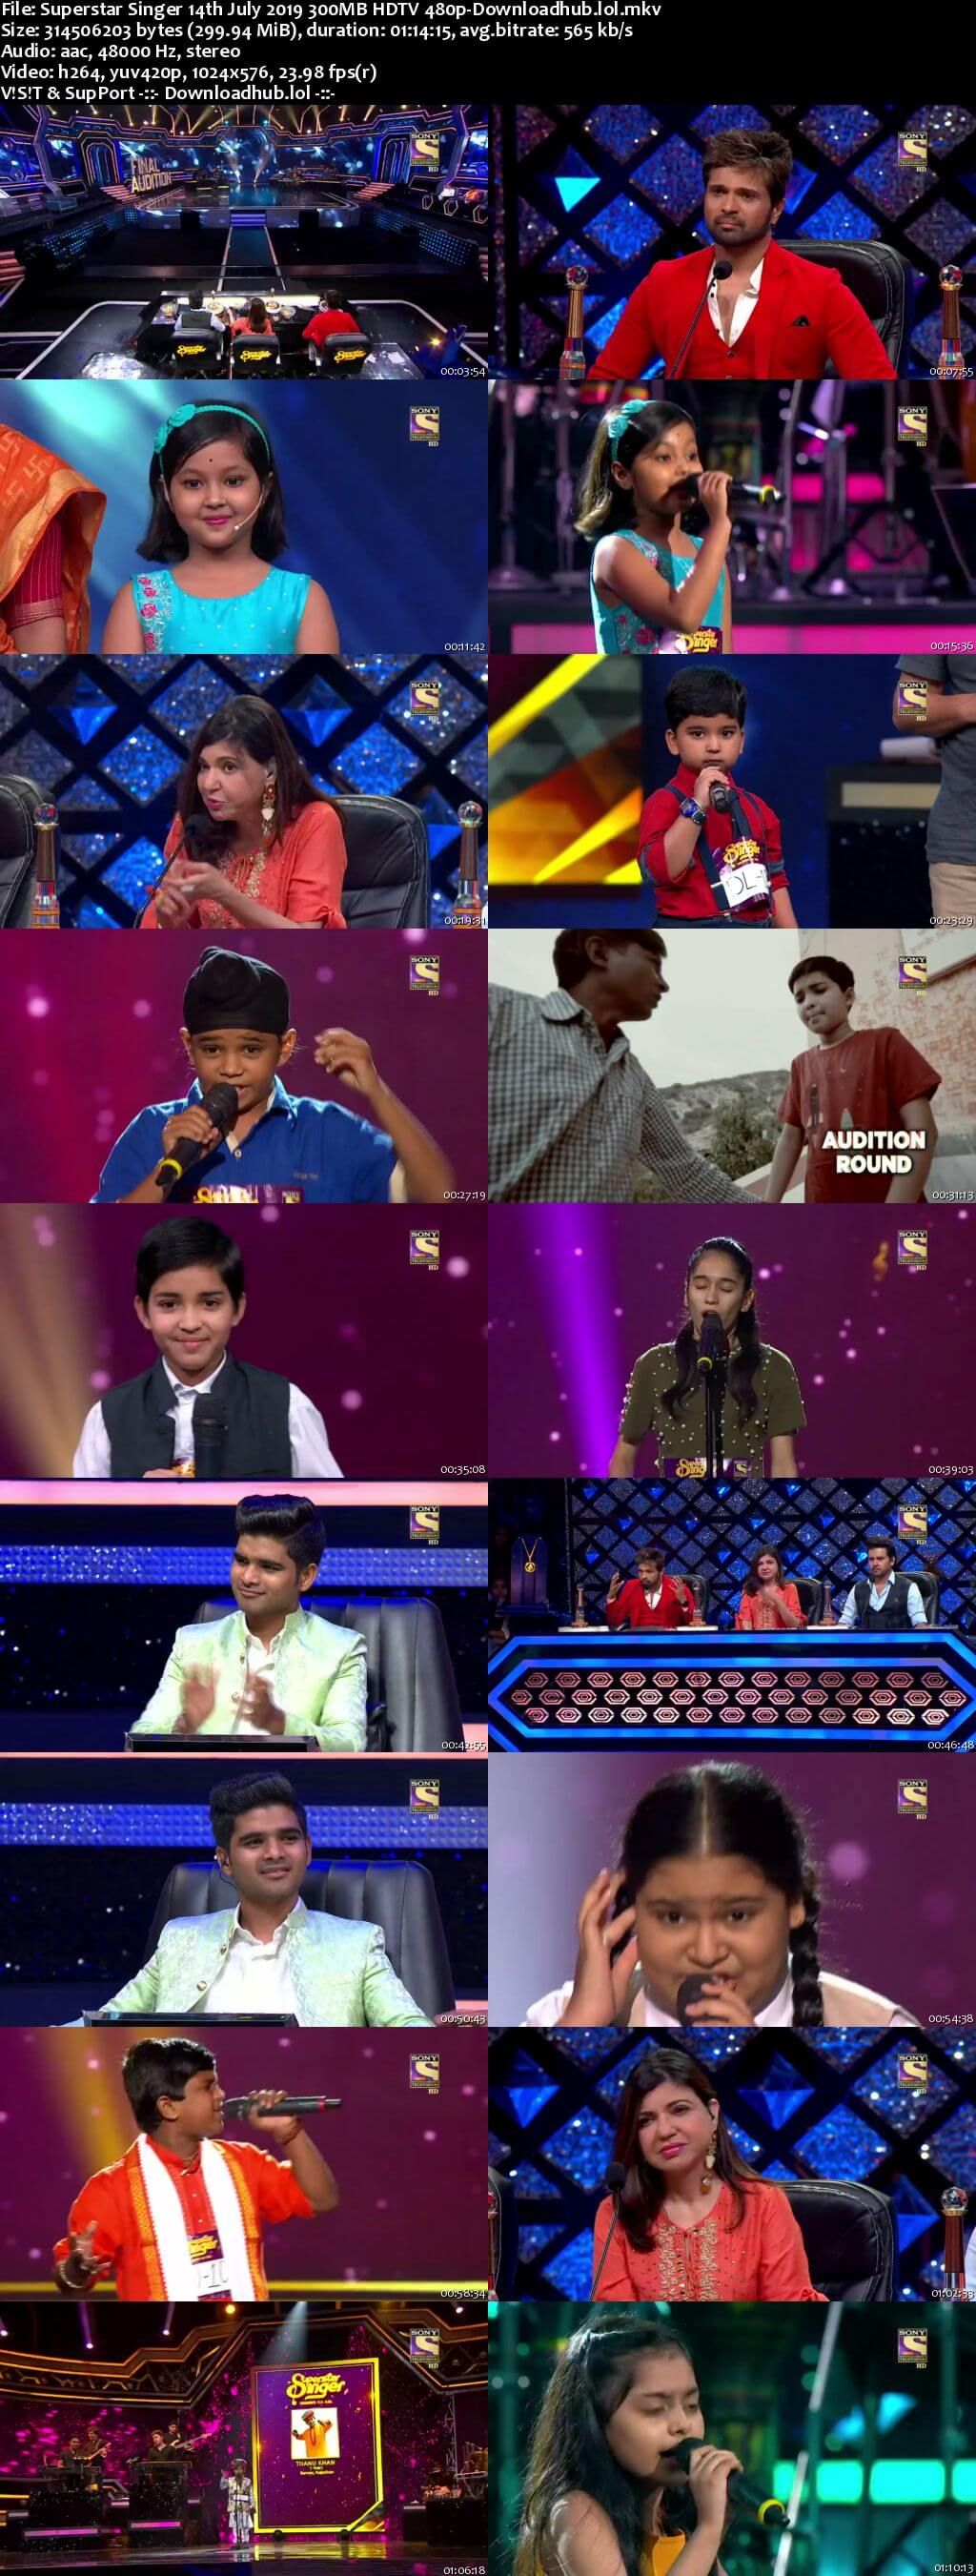 Watch Online Superstar Singer 14th July 2019 Full Show Download